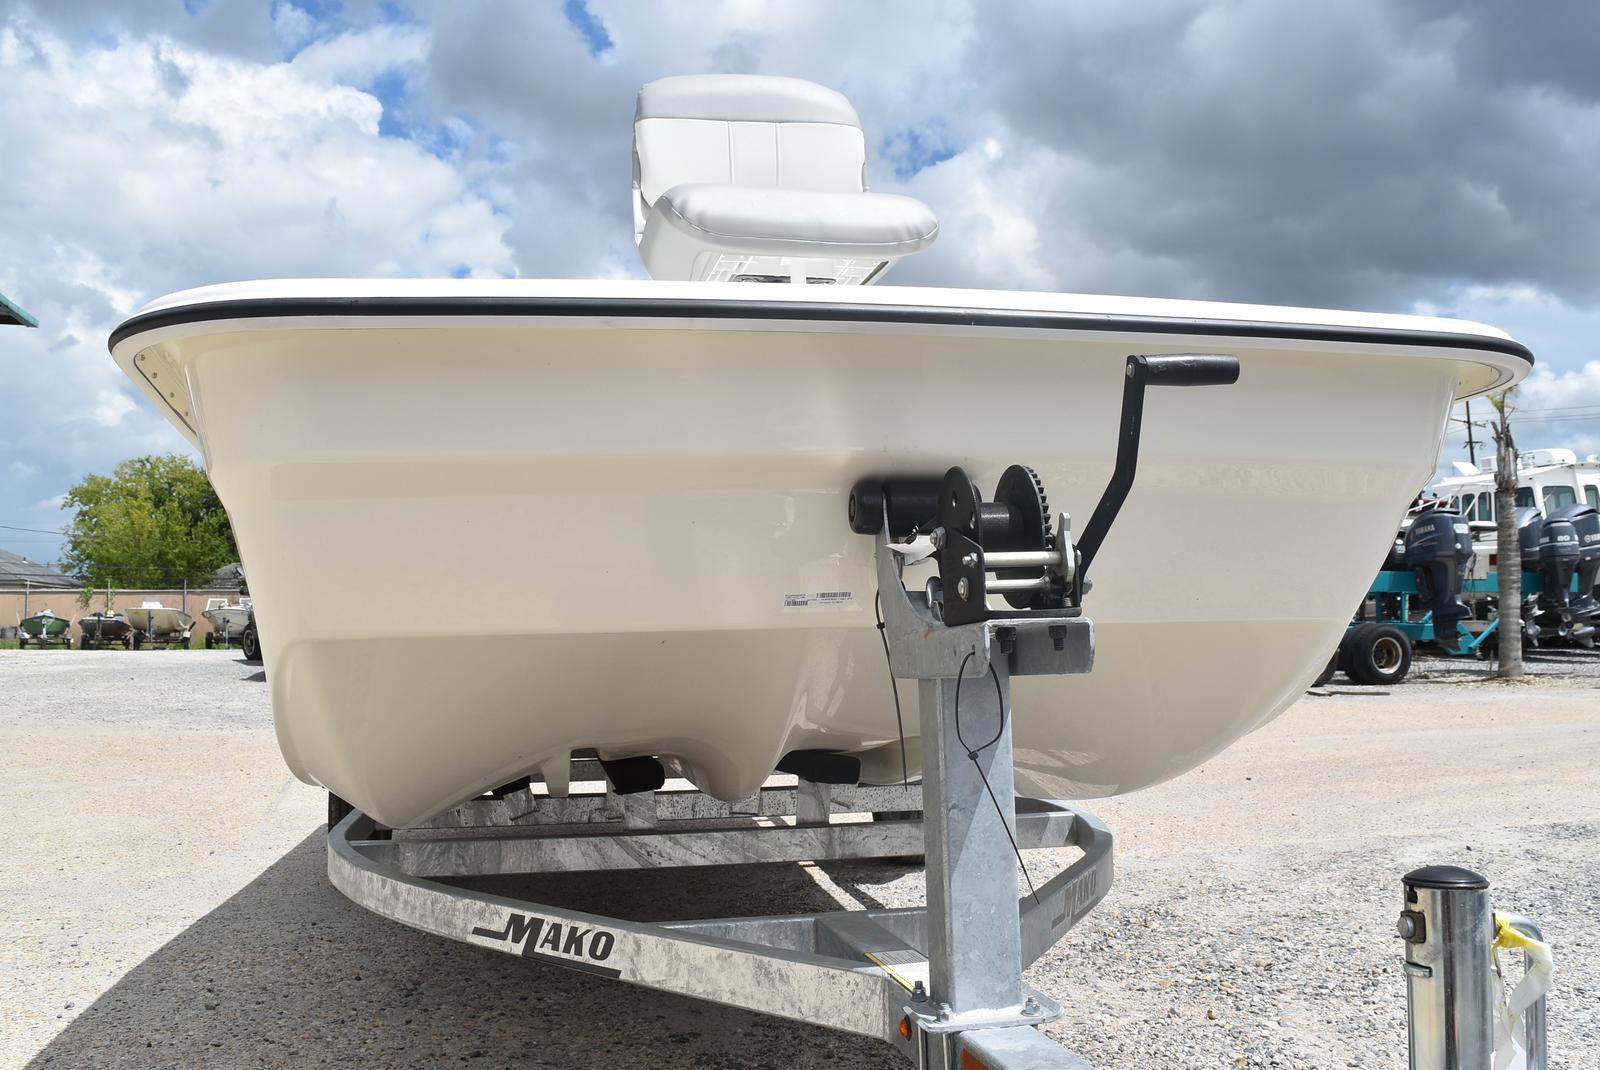 2020 Mako boat for sale, model of the boat is Pro Skiff 17, 75 ELPT & Image # 366 of 702